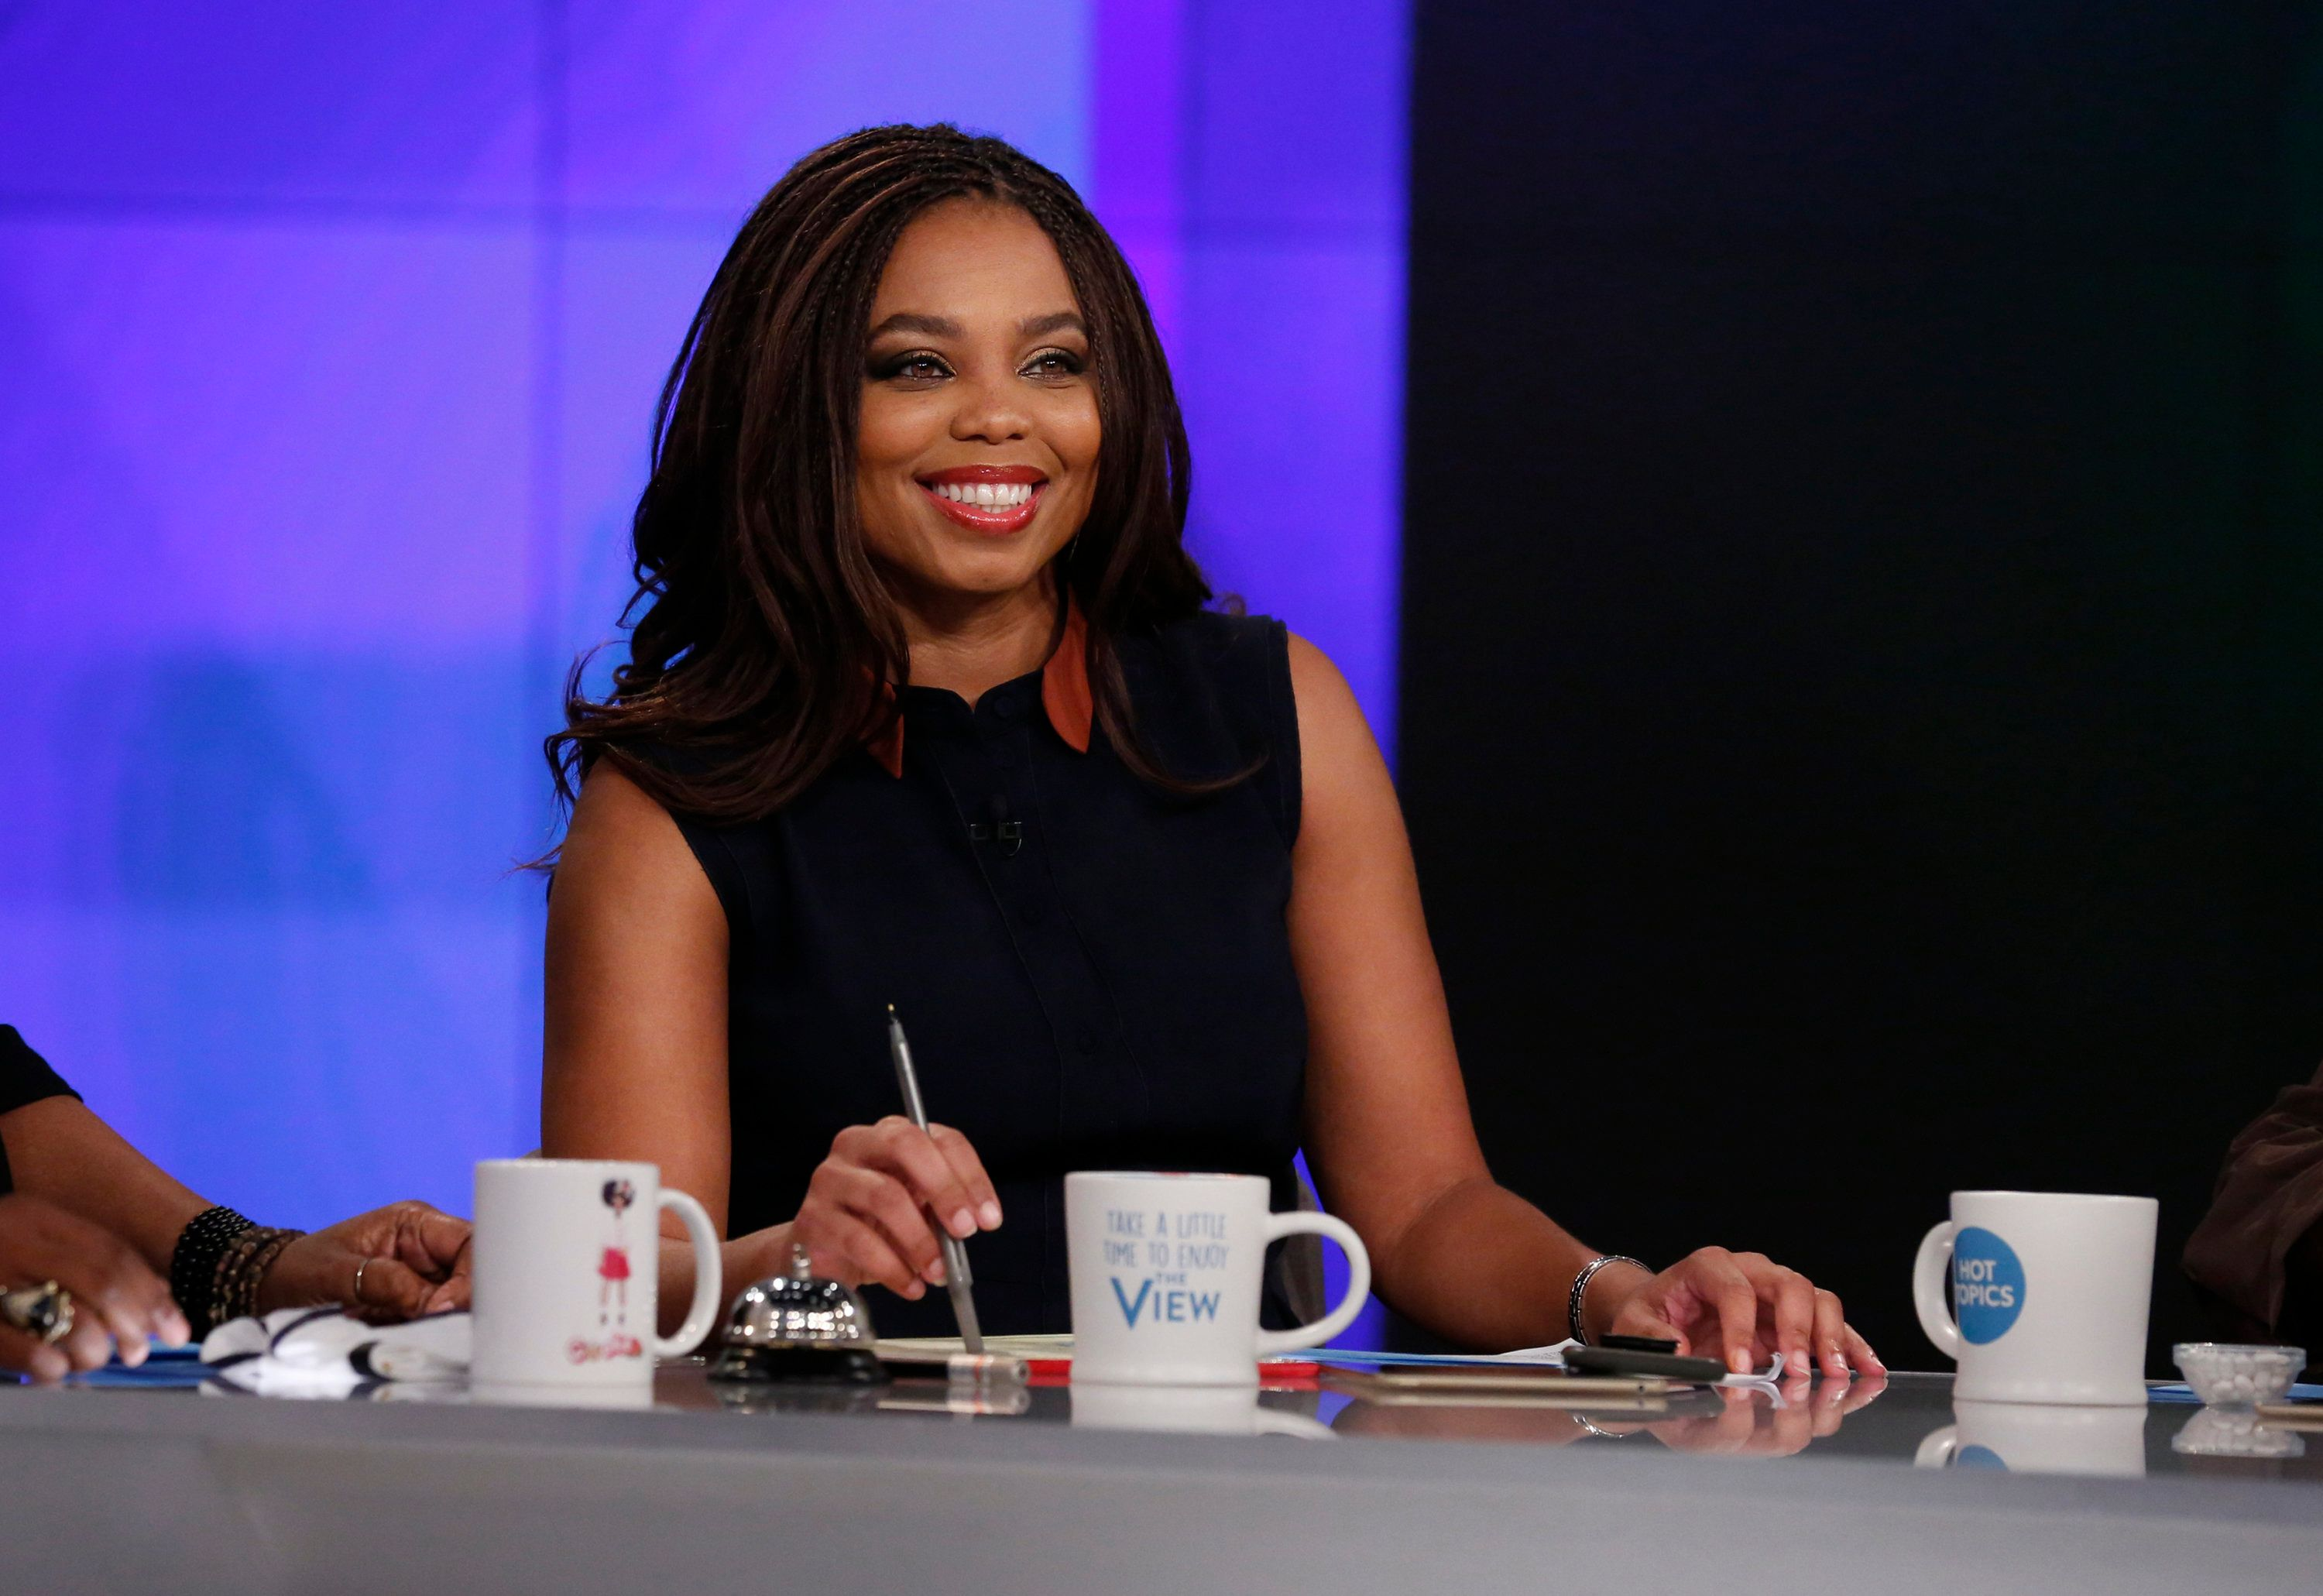 THE VIEW - Jemele Hill is the guest co-host today, Wednesday, 2/21/18 on ABC's 'The View.'    'The View' airs Monday-Friday (11:00 am-12:00 pm, ET) on the ABC Television Network.     (Photo by Heidi Gutman/ABC via Getty Images)  JEMELE HILL